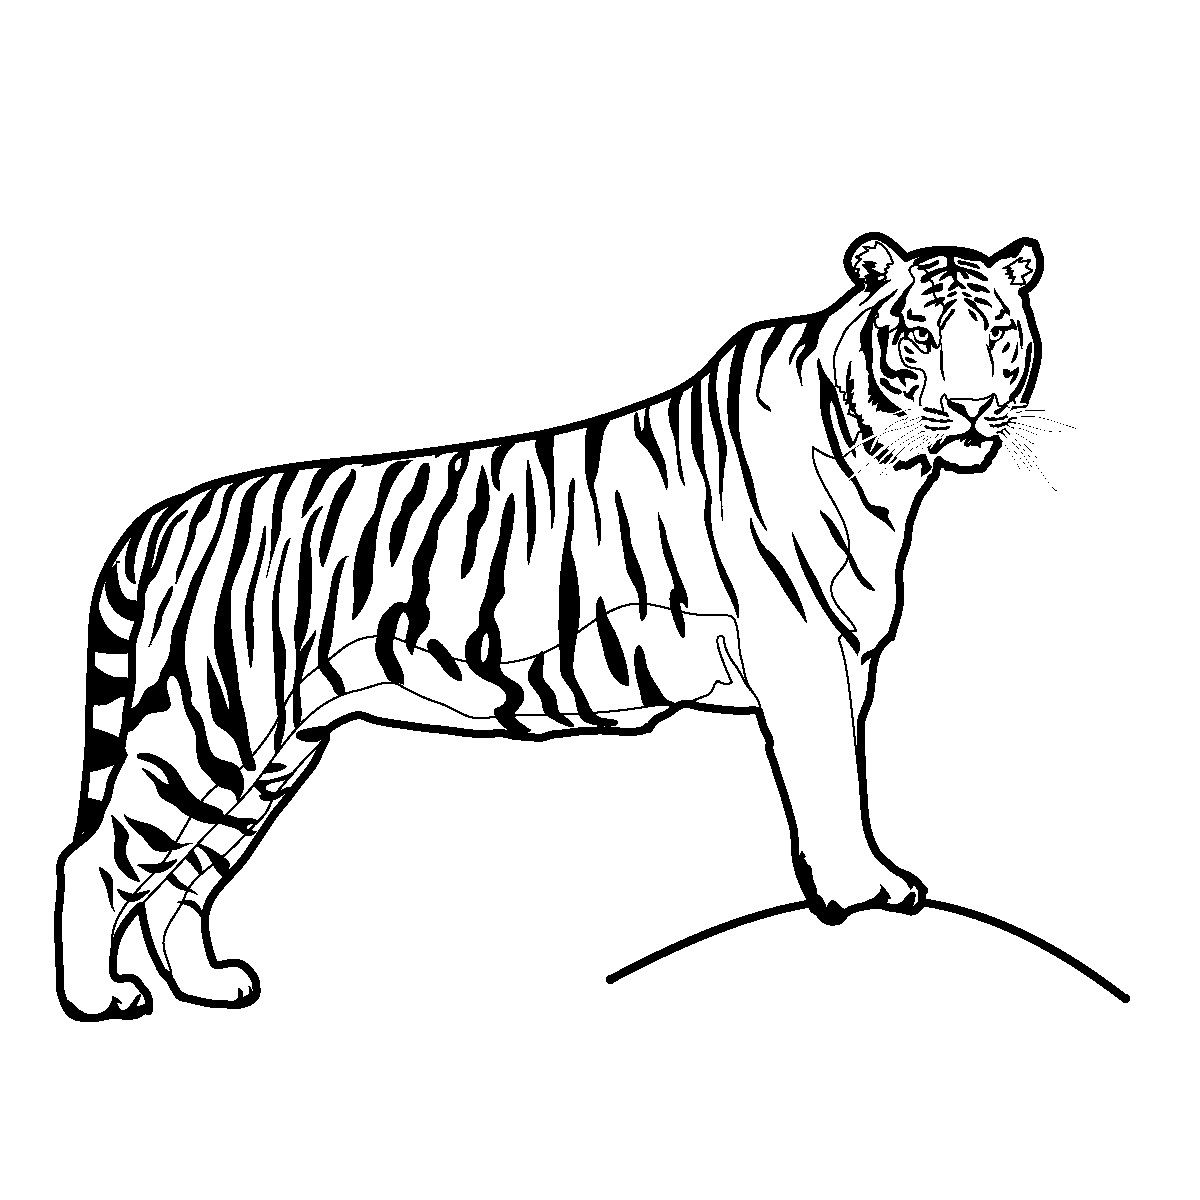 Free coloring pages for exercise - Exercise Free Printable Tiger Coloring Pages For Kids